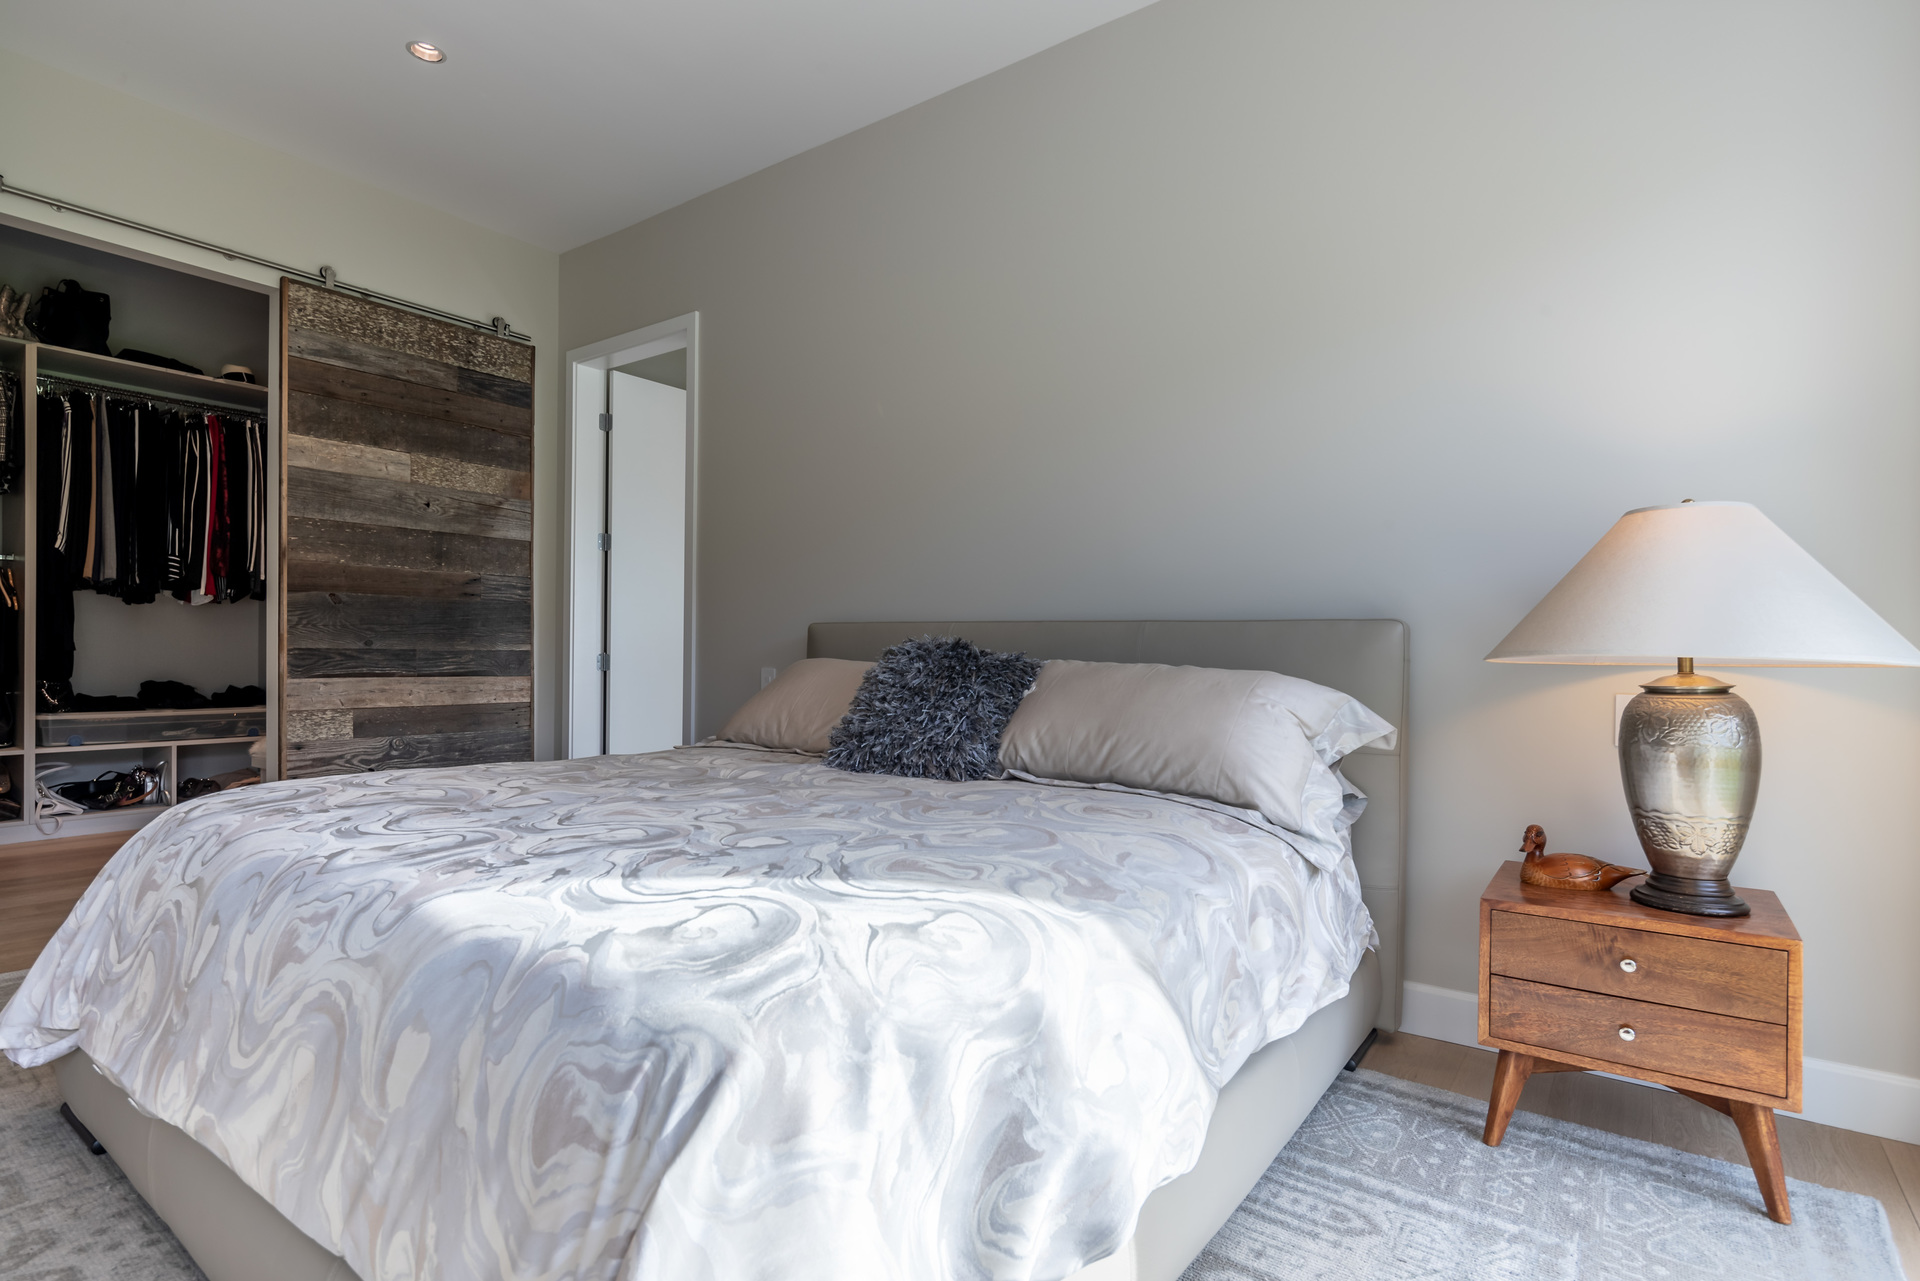 Master Bedroom & Walk-In Closet at 5101 Jagtar's Way, Victoria, Vancouver Island,